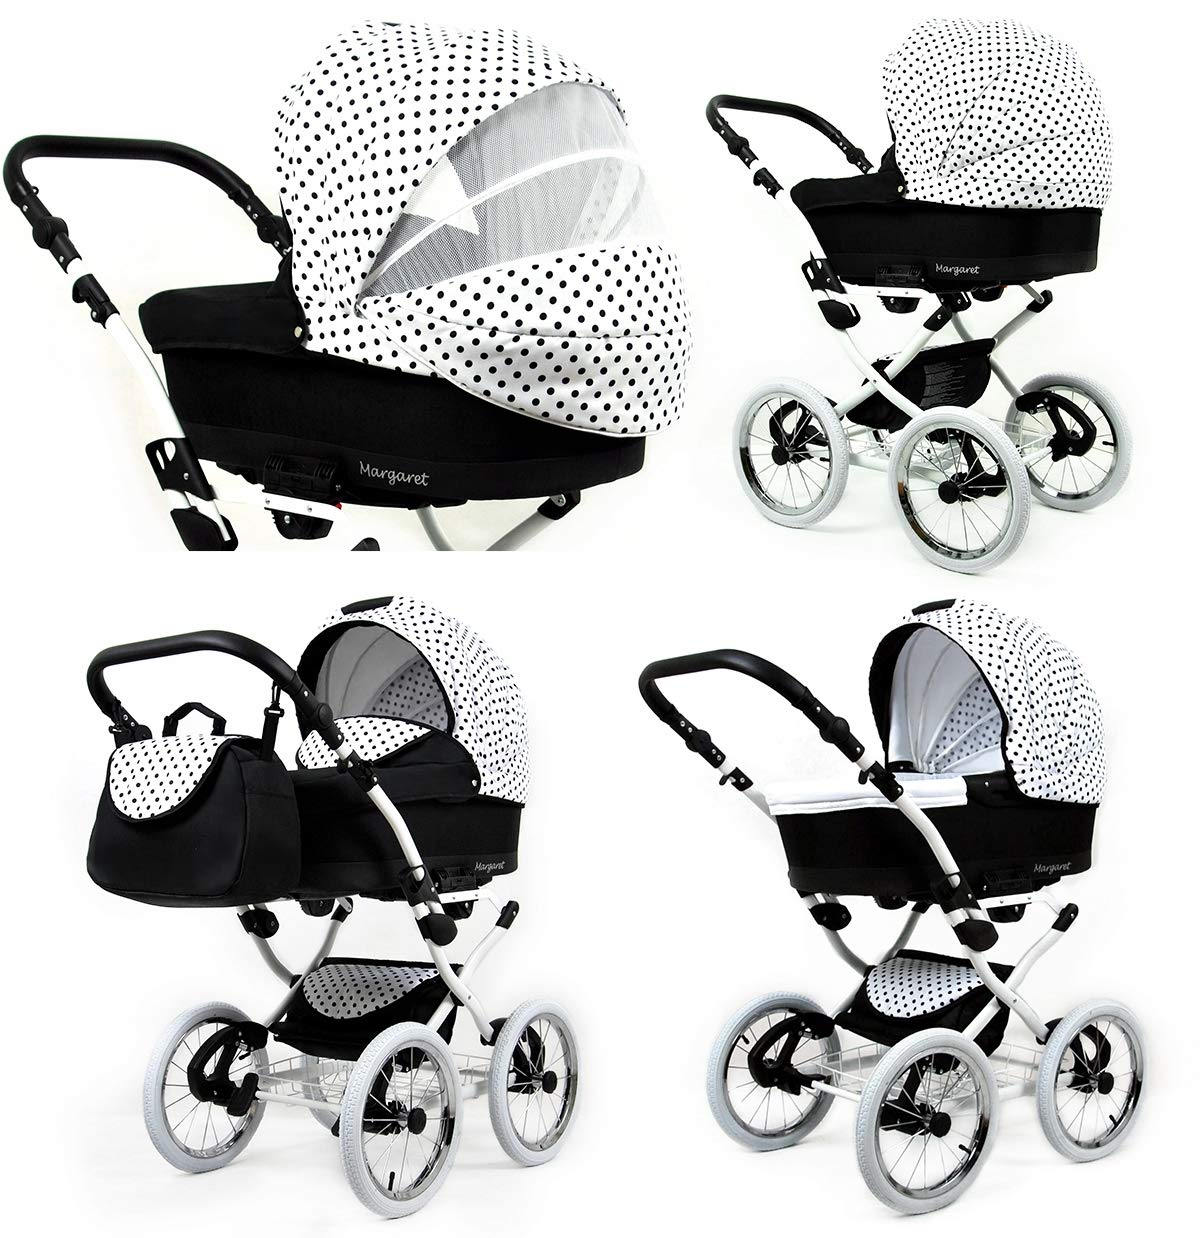 Travel System Retro Stroller Pram 2in1 3in1 Set Isofix Nostalgica by SaintBaby Navy Blue Star 2in1 Without Baby seat SaintBaby 3in1 or 2in1 Selectable. At 3in1 you will also receive the car seat (baby seat). Of course you get the baby tub (classic pram) as well as the buggy attachment (sports seat) no matter if 2in1 or 3in1. The car naturally complies with the EU safety standard EN1888. During production and before shipment, each wagon is carefully inspected so that you can be sure you have one of the best wagons. Saintbaby stands for all-in-one carefree packages, so you will also receive a diaper bag in the same colour as the car as well as rain and insect protection free of charge. With all the colours of this pram you will find the pram of your dreams. 3